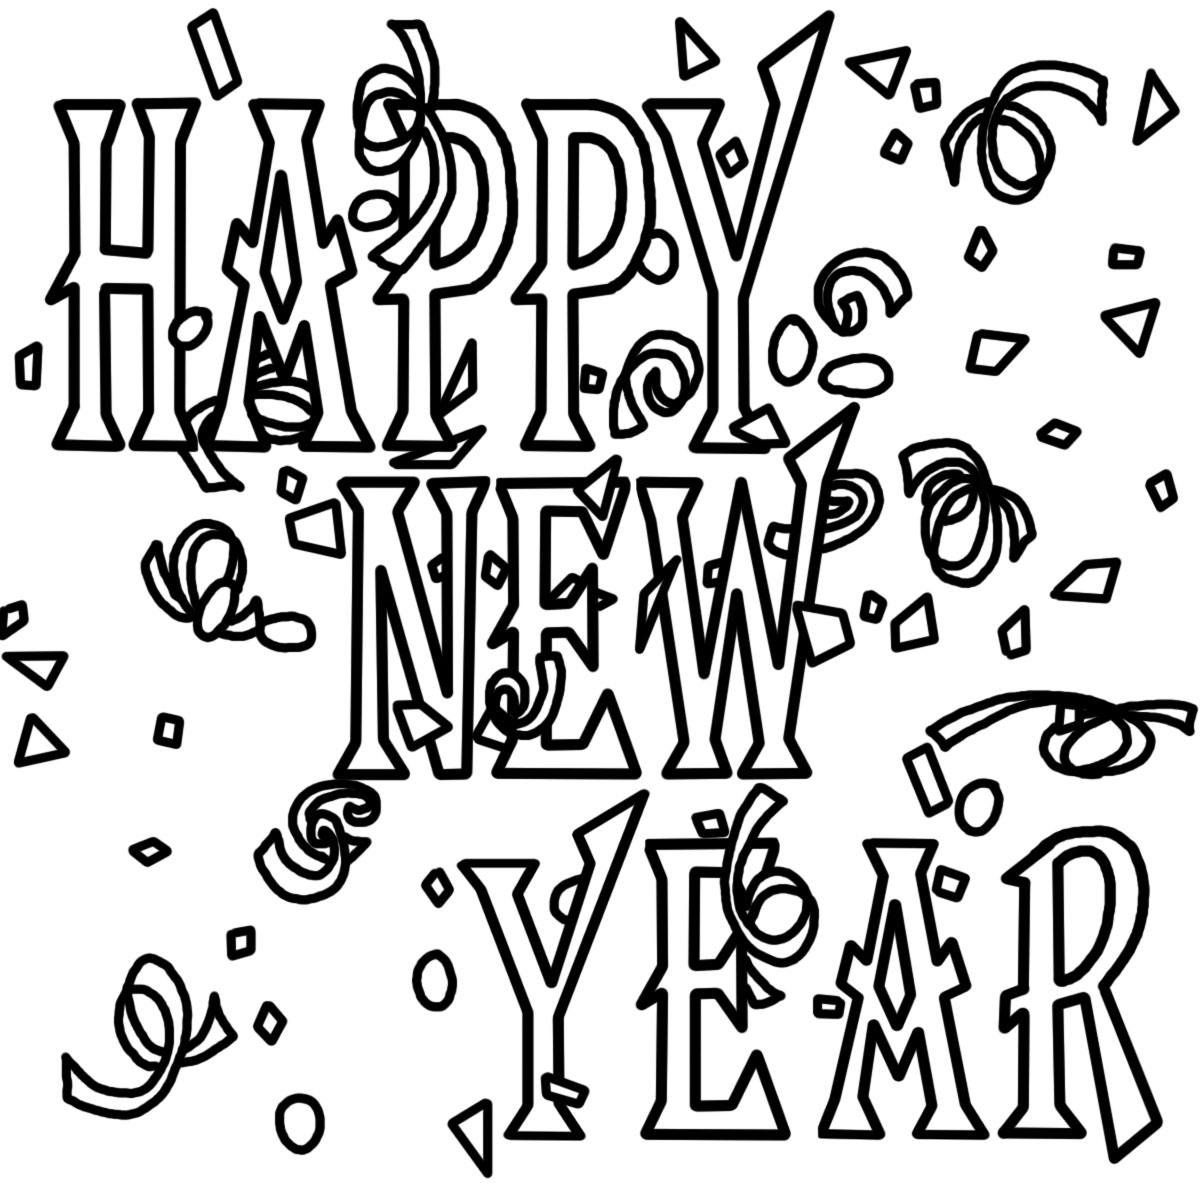 Coloring Pages Free Printable New Years Coloring Pages free printable new years coloring pages for kids year page